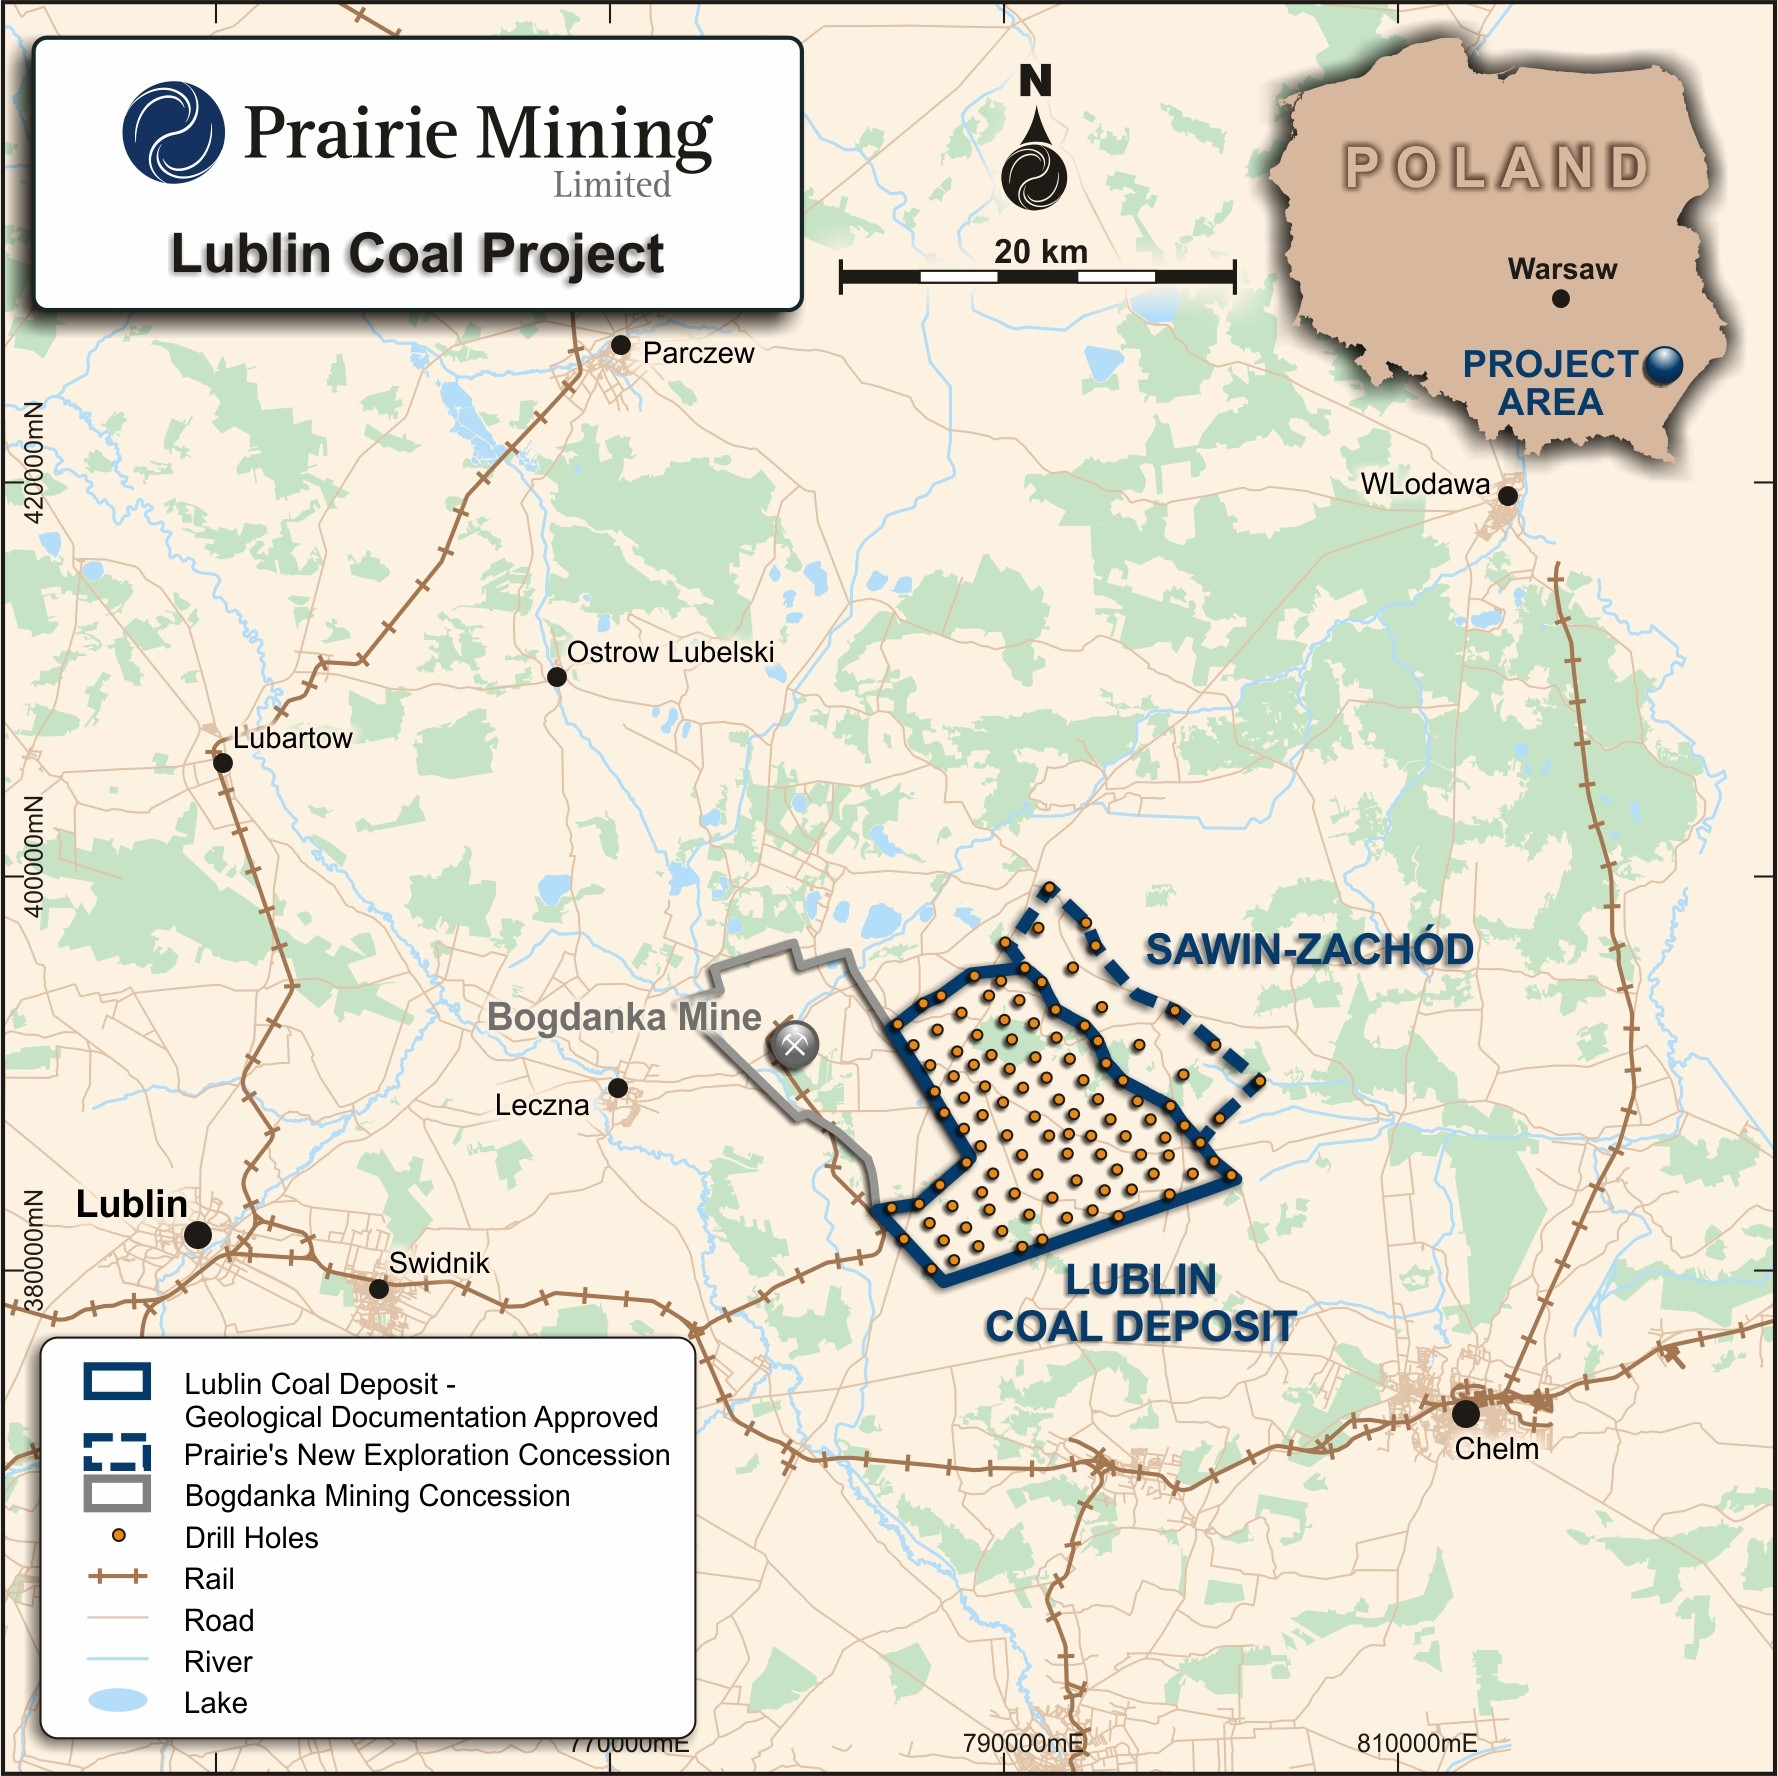 Concessions hinder investment in mining in Poland